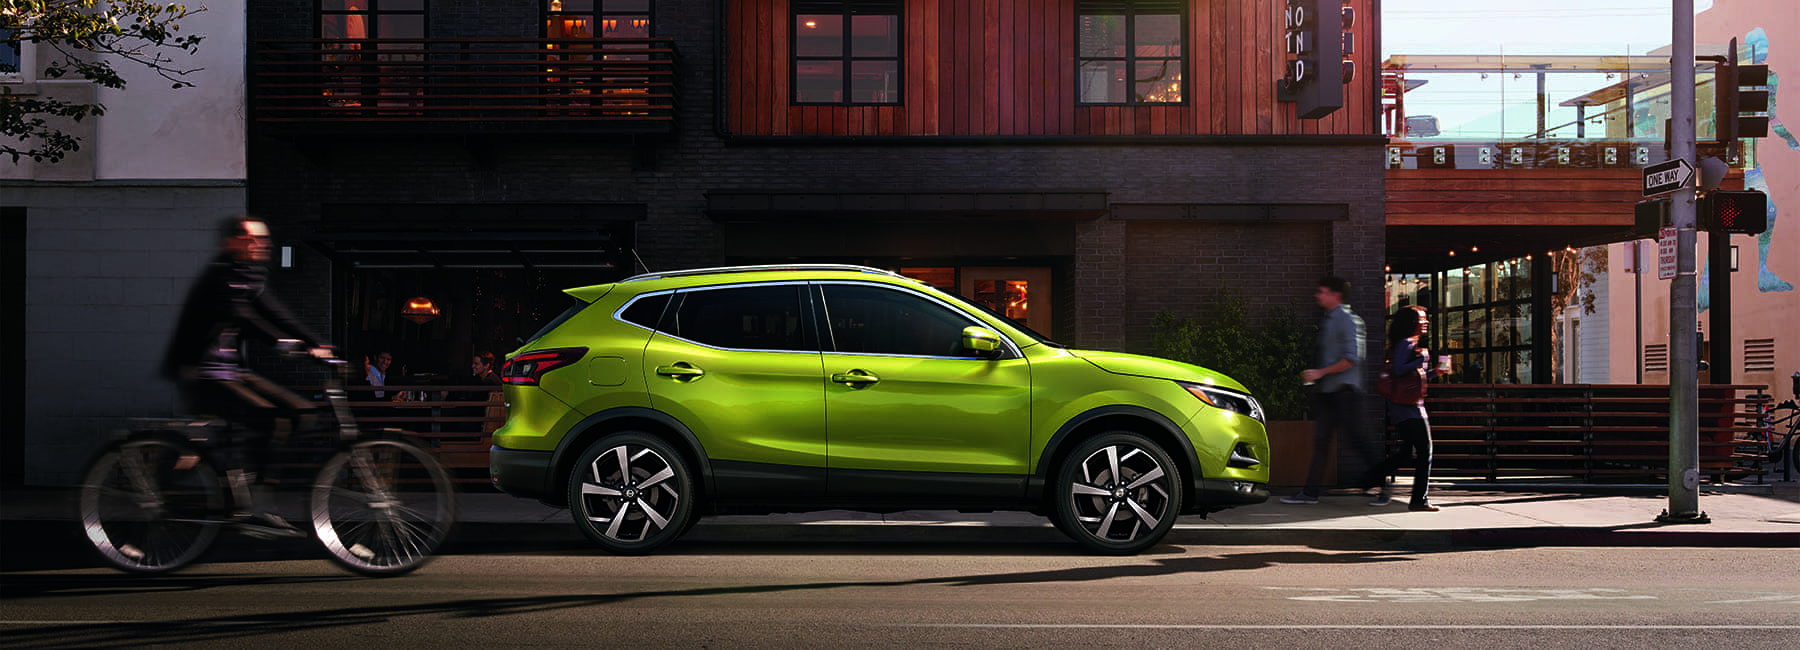 2020-nissan-rogue-sport-exterior-side-view